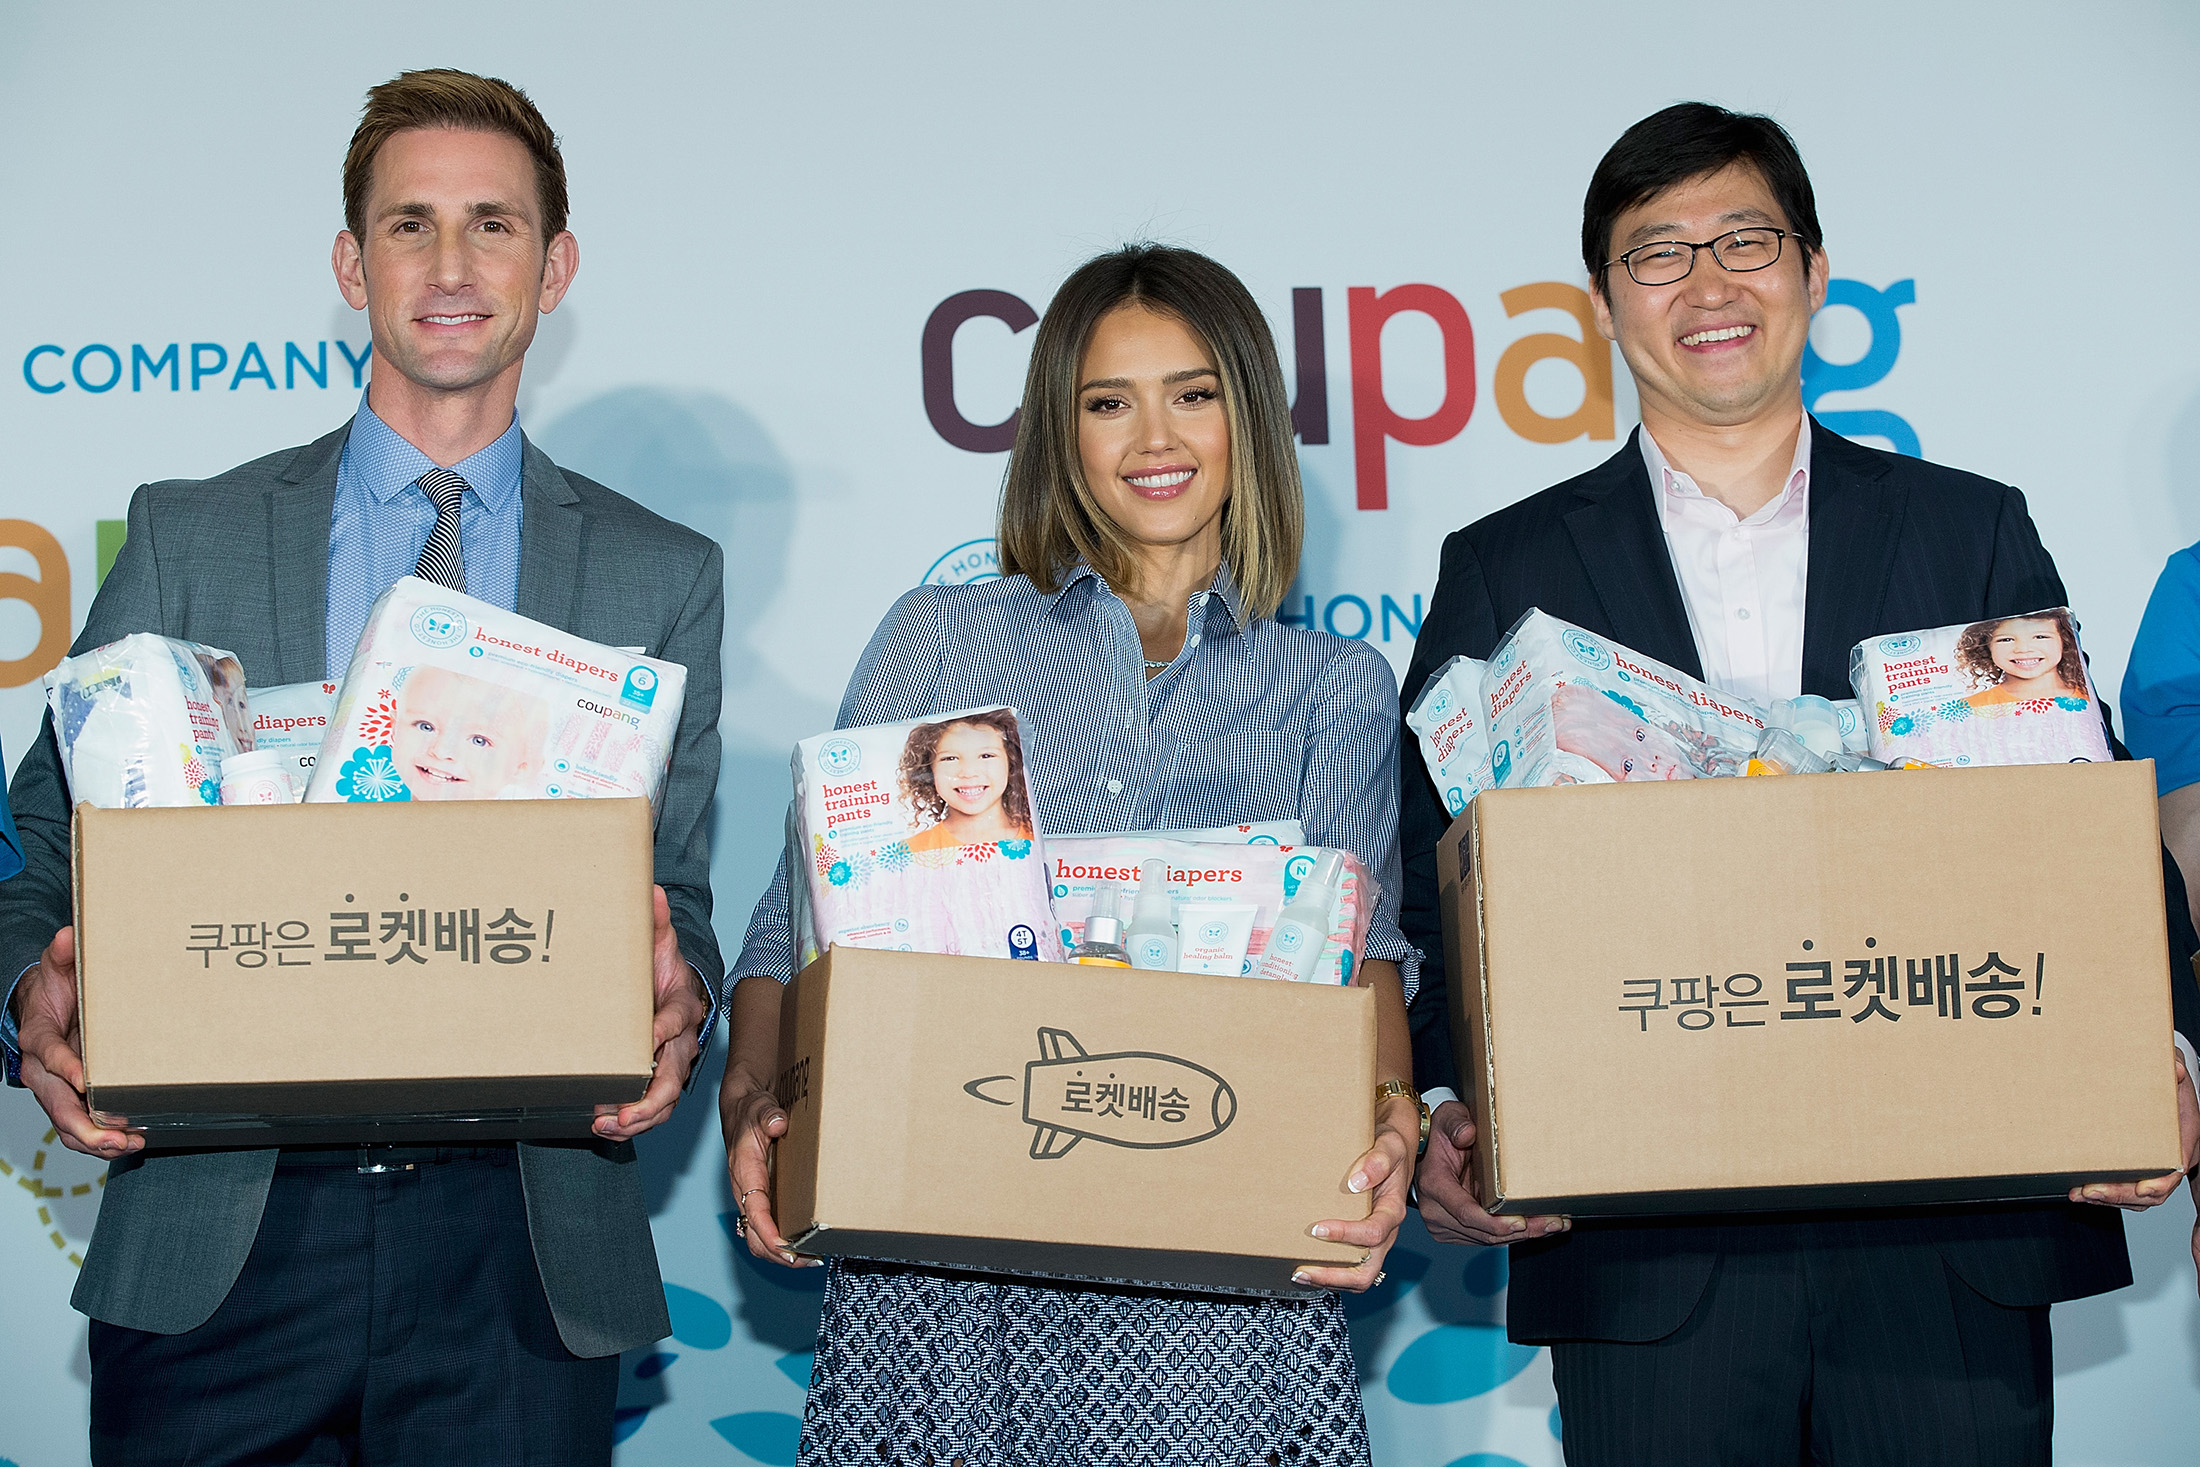 Harvard Dropout's Startup Loses Billions in South Korea Battle ...